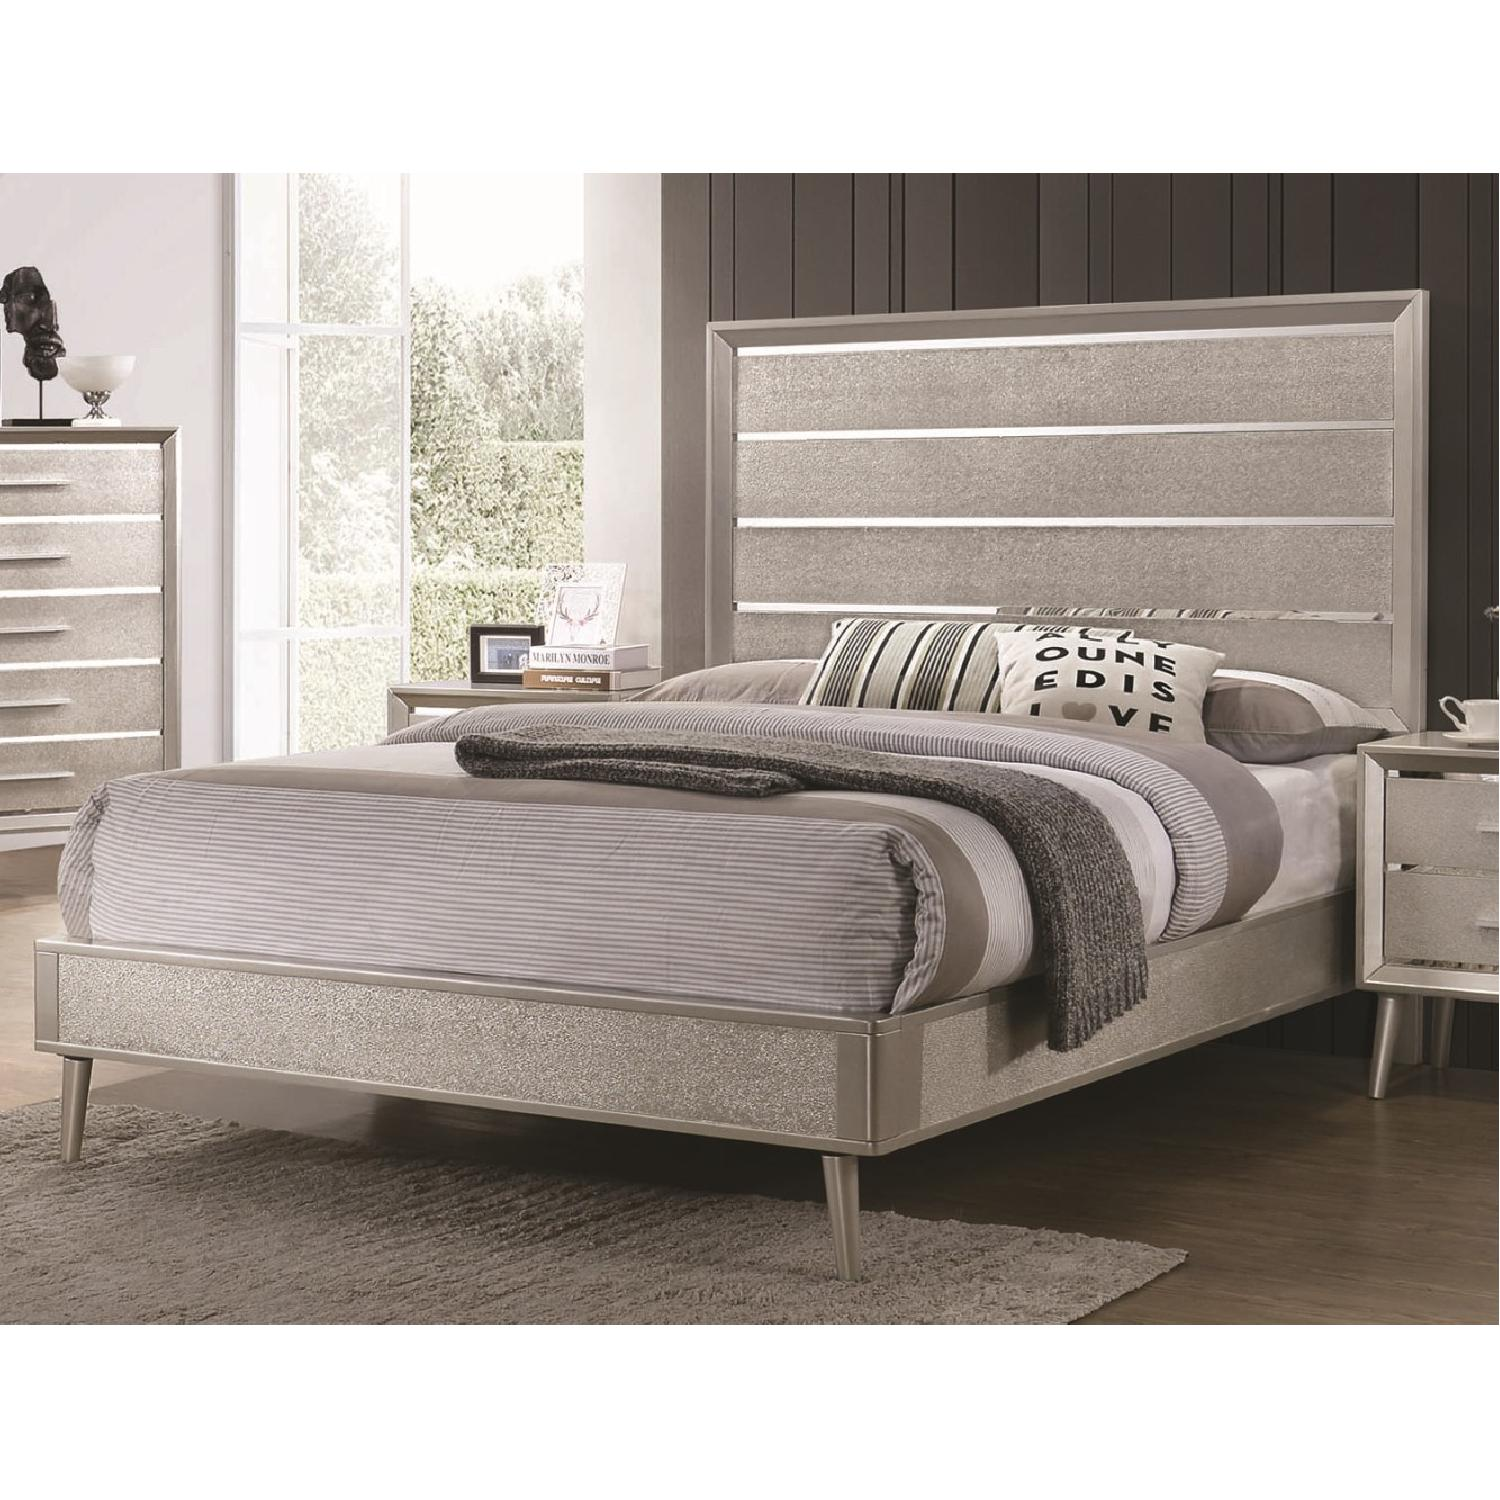 Mid Century Style King Bed in Metallic Silver Glitter Design - image-8